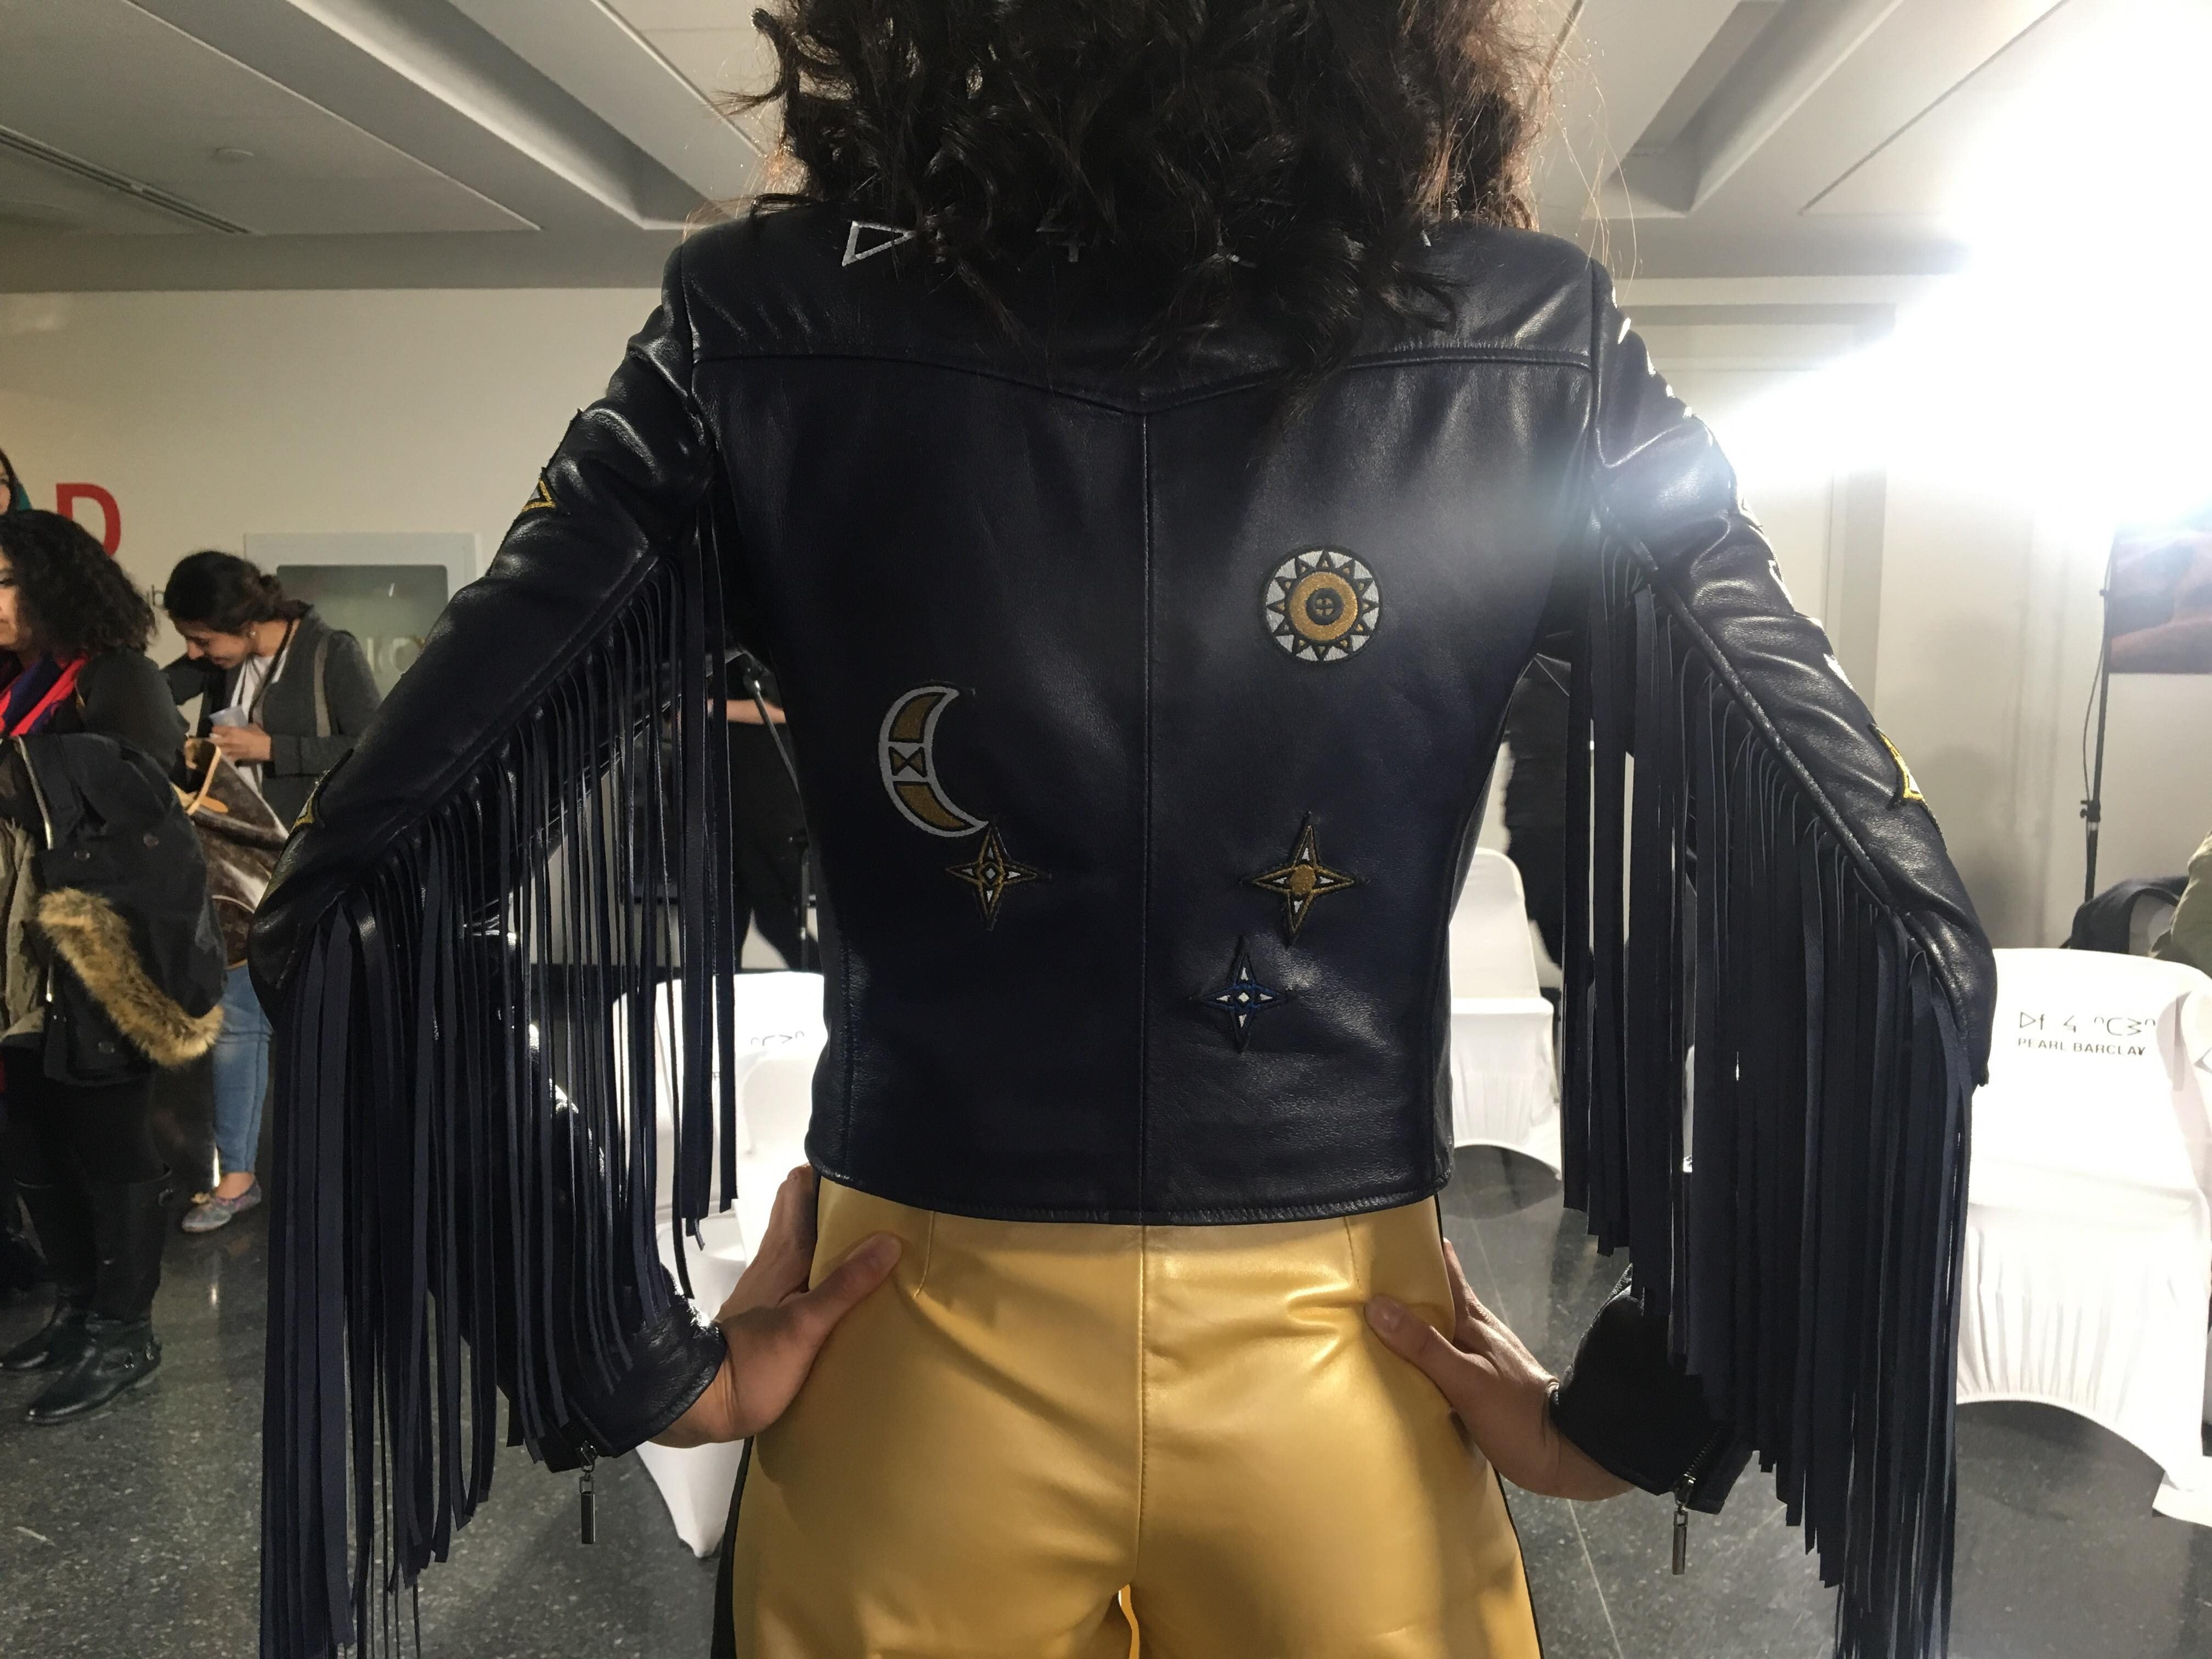 A person wearing a black jacket and gold pants.